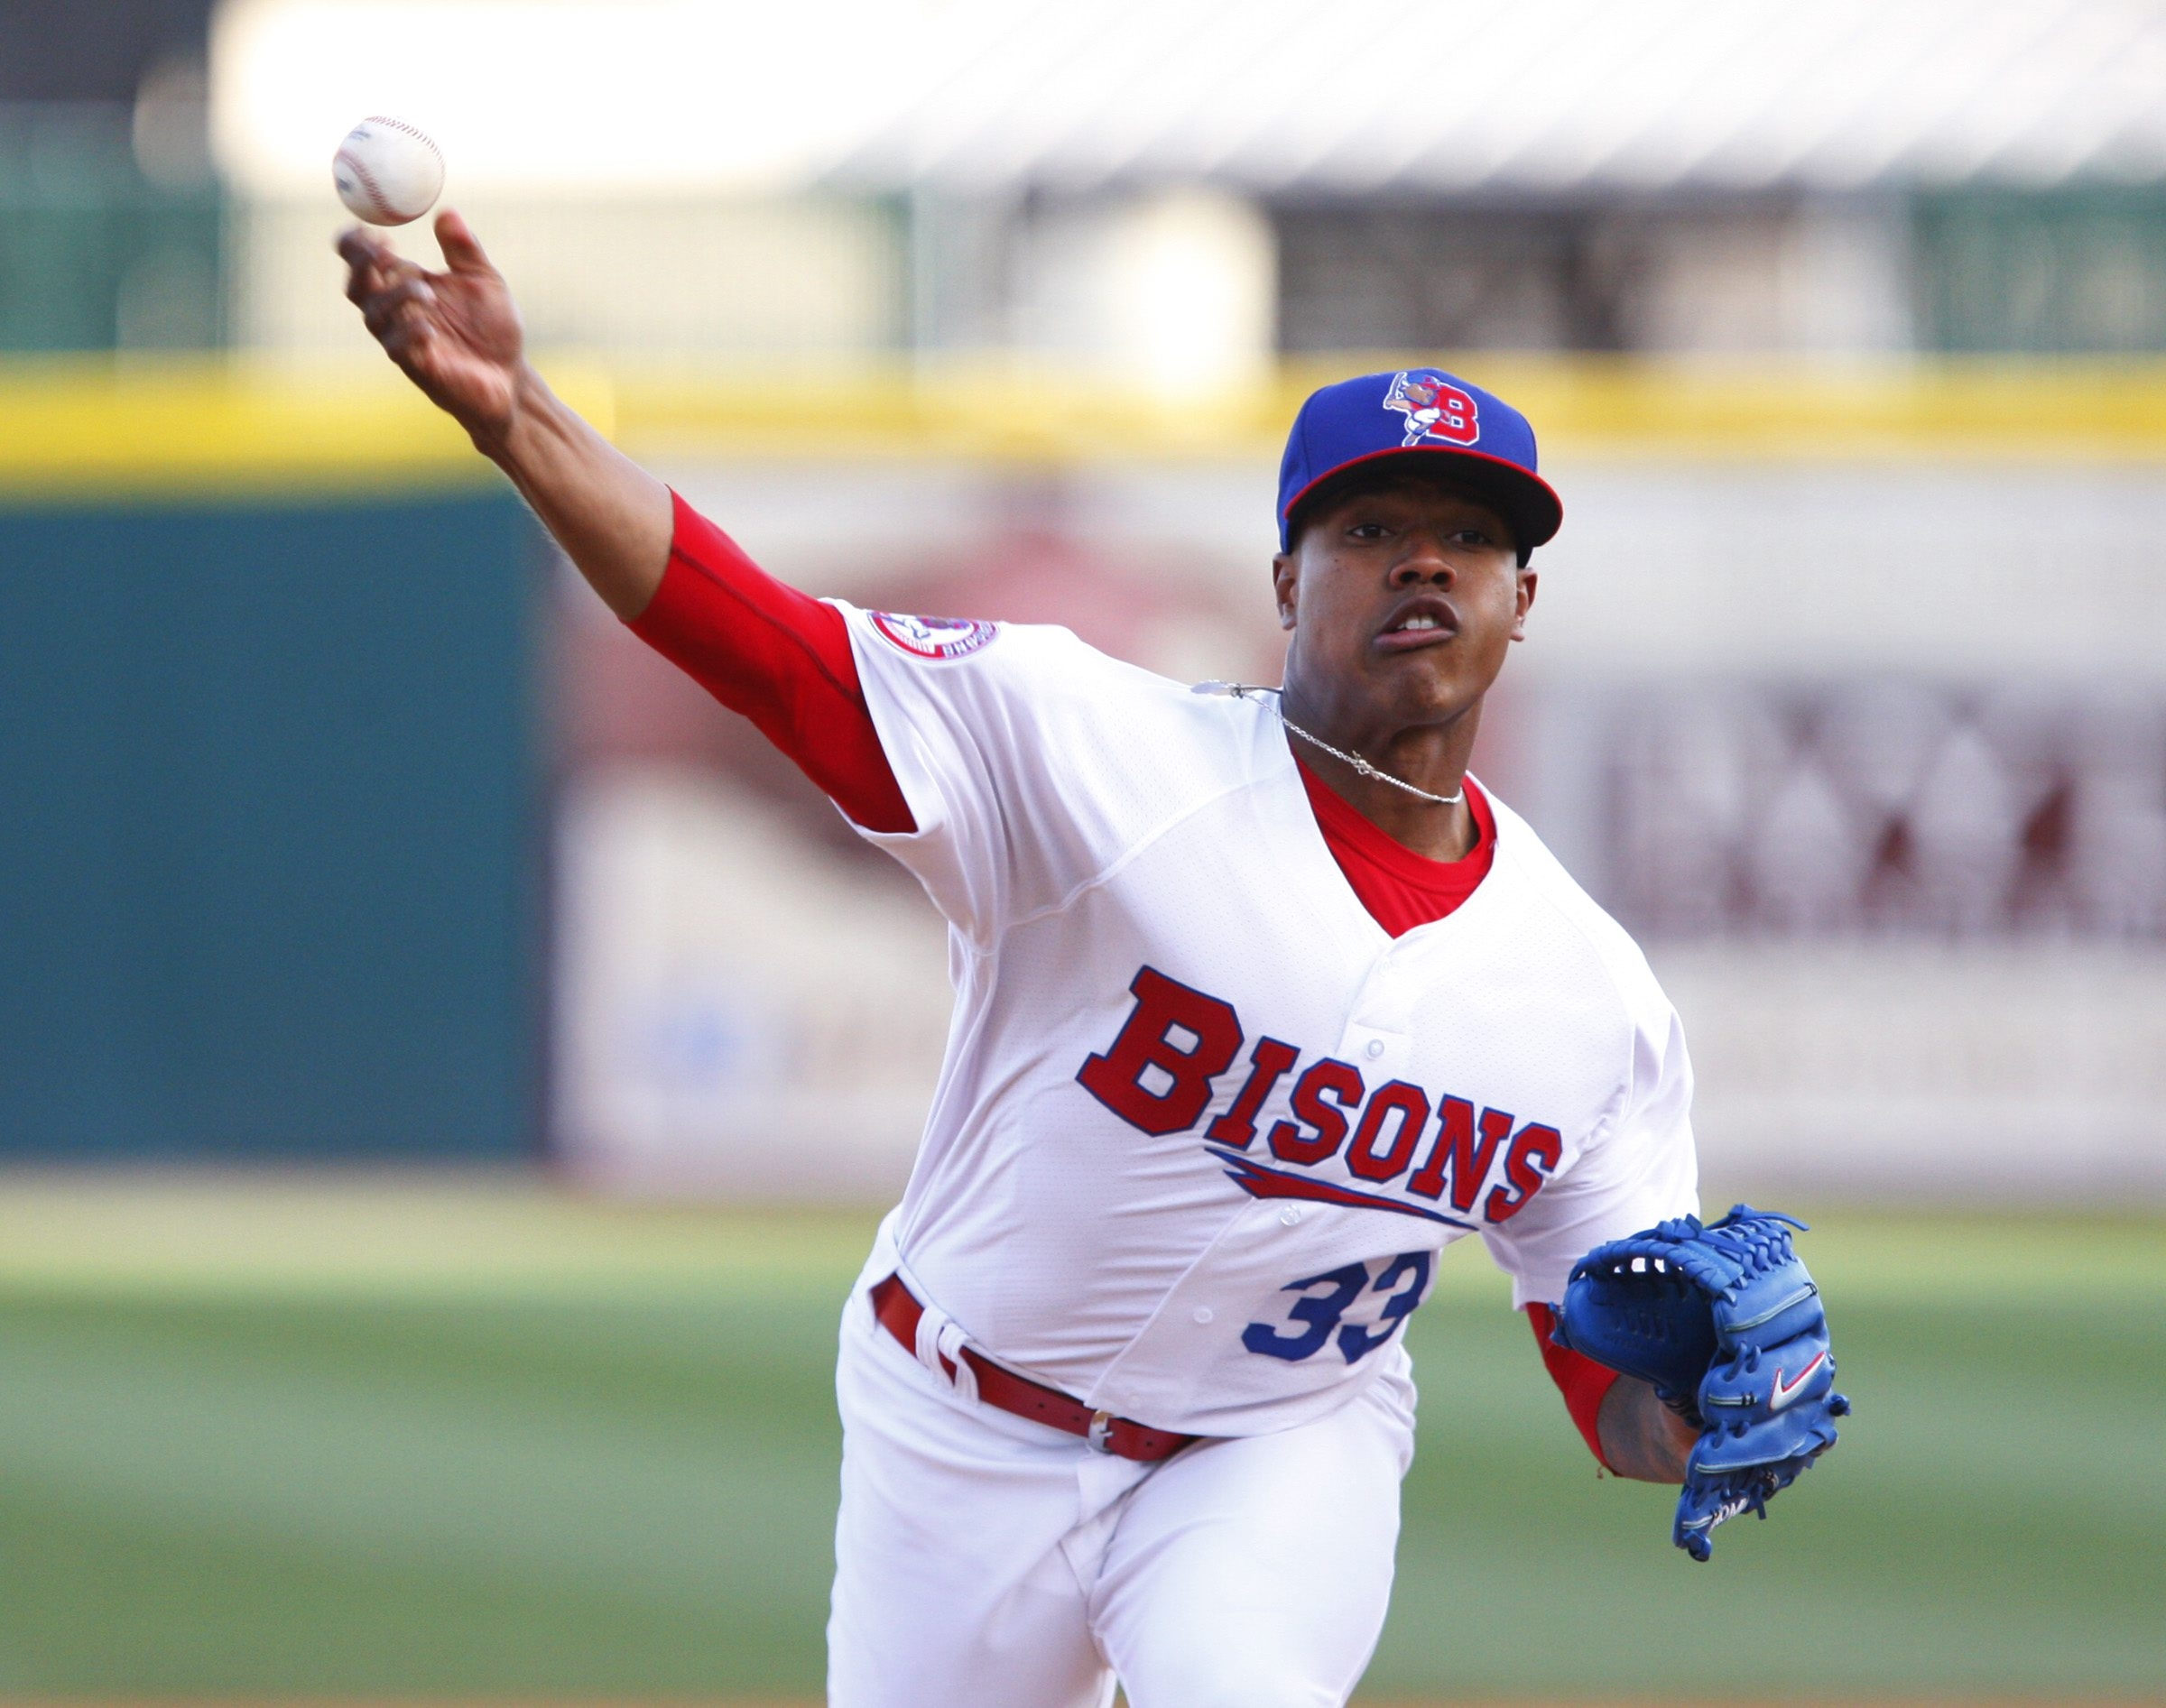 Bisons starter Marcus Stroman gave up five hits and had nine strikeouts against Scranton/Wilkes-Barre.